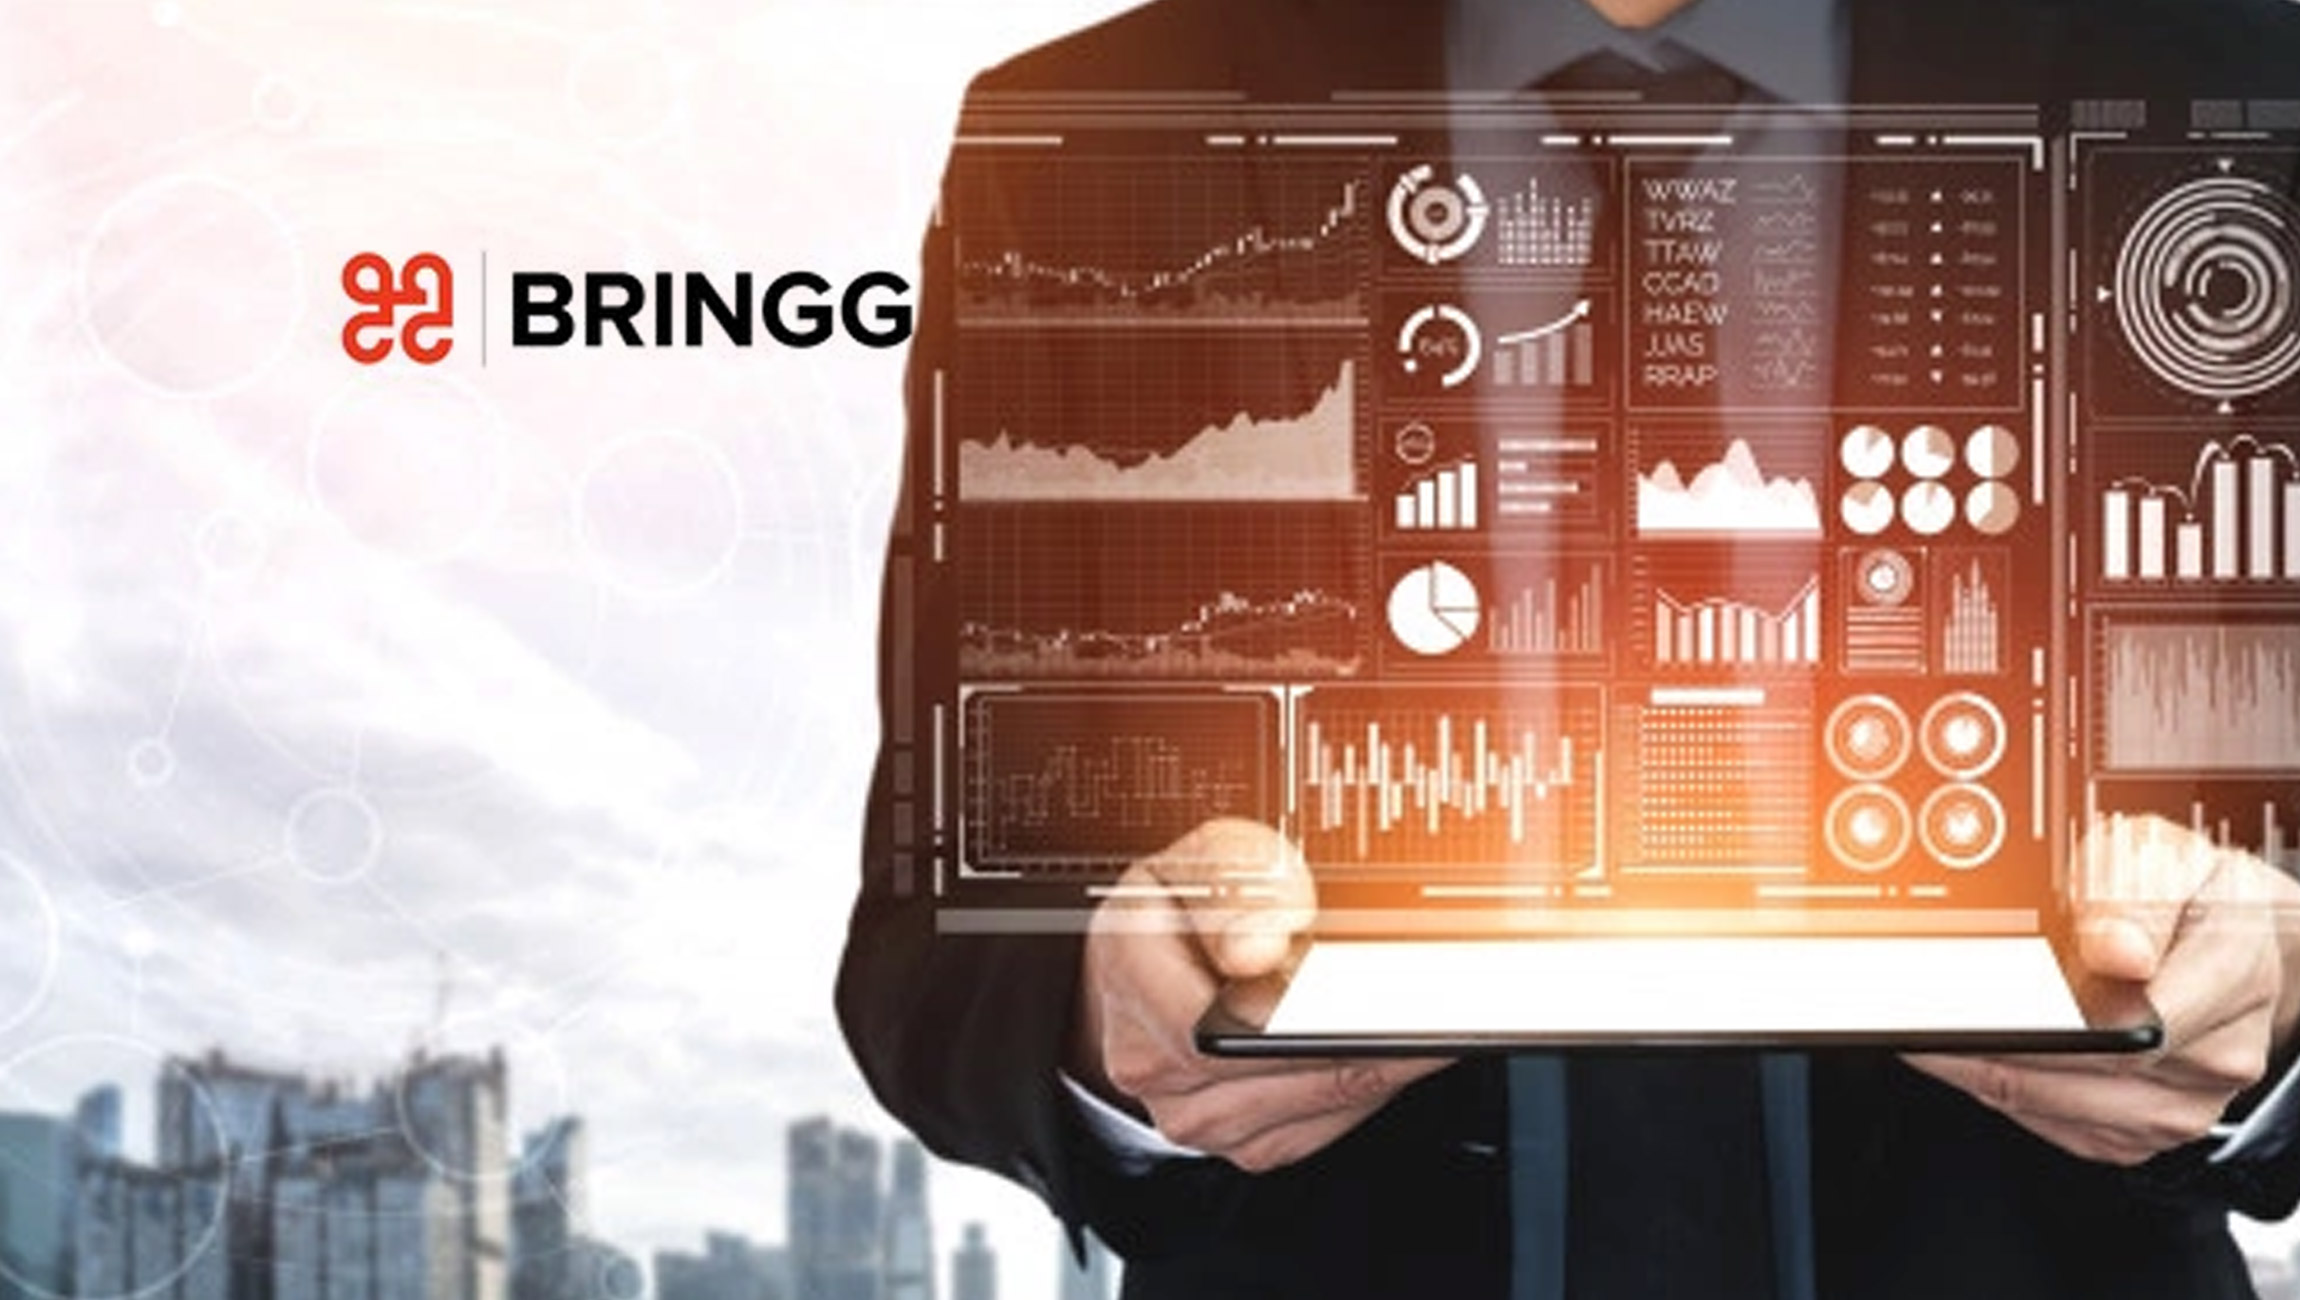 """Bringg Announces """"Last Mile by Bringg on Salesforce"""" as part of Salesforce Fulfillment Network on Salesforce AppExchange, the World's Leading Enterprise Cloud Marketplace"""